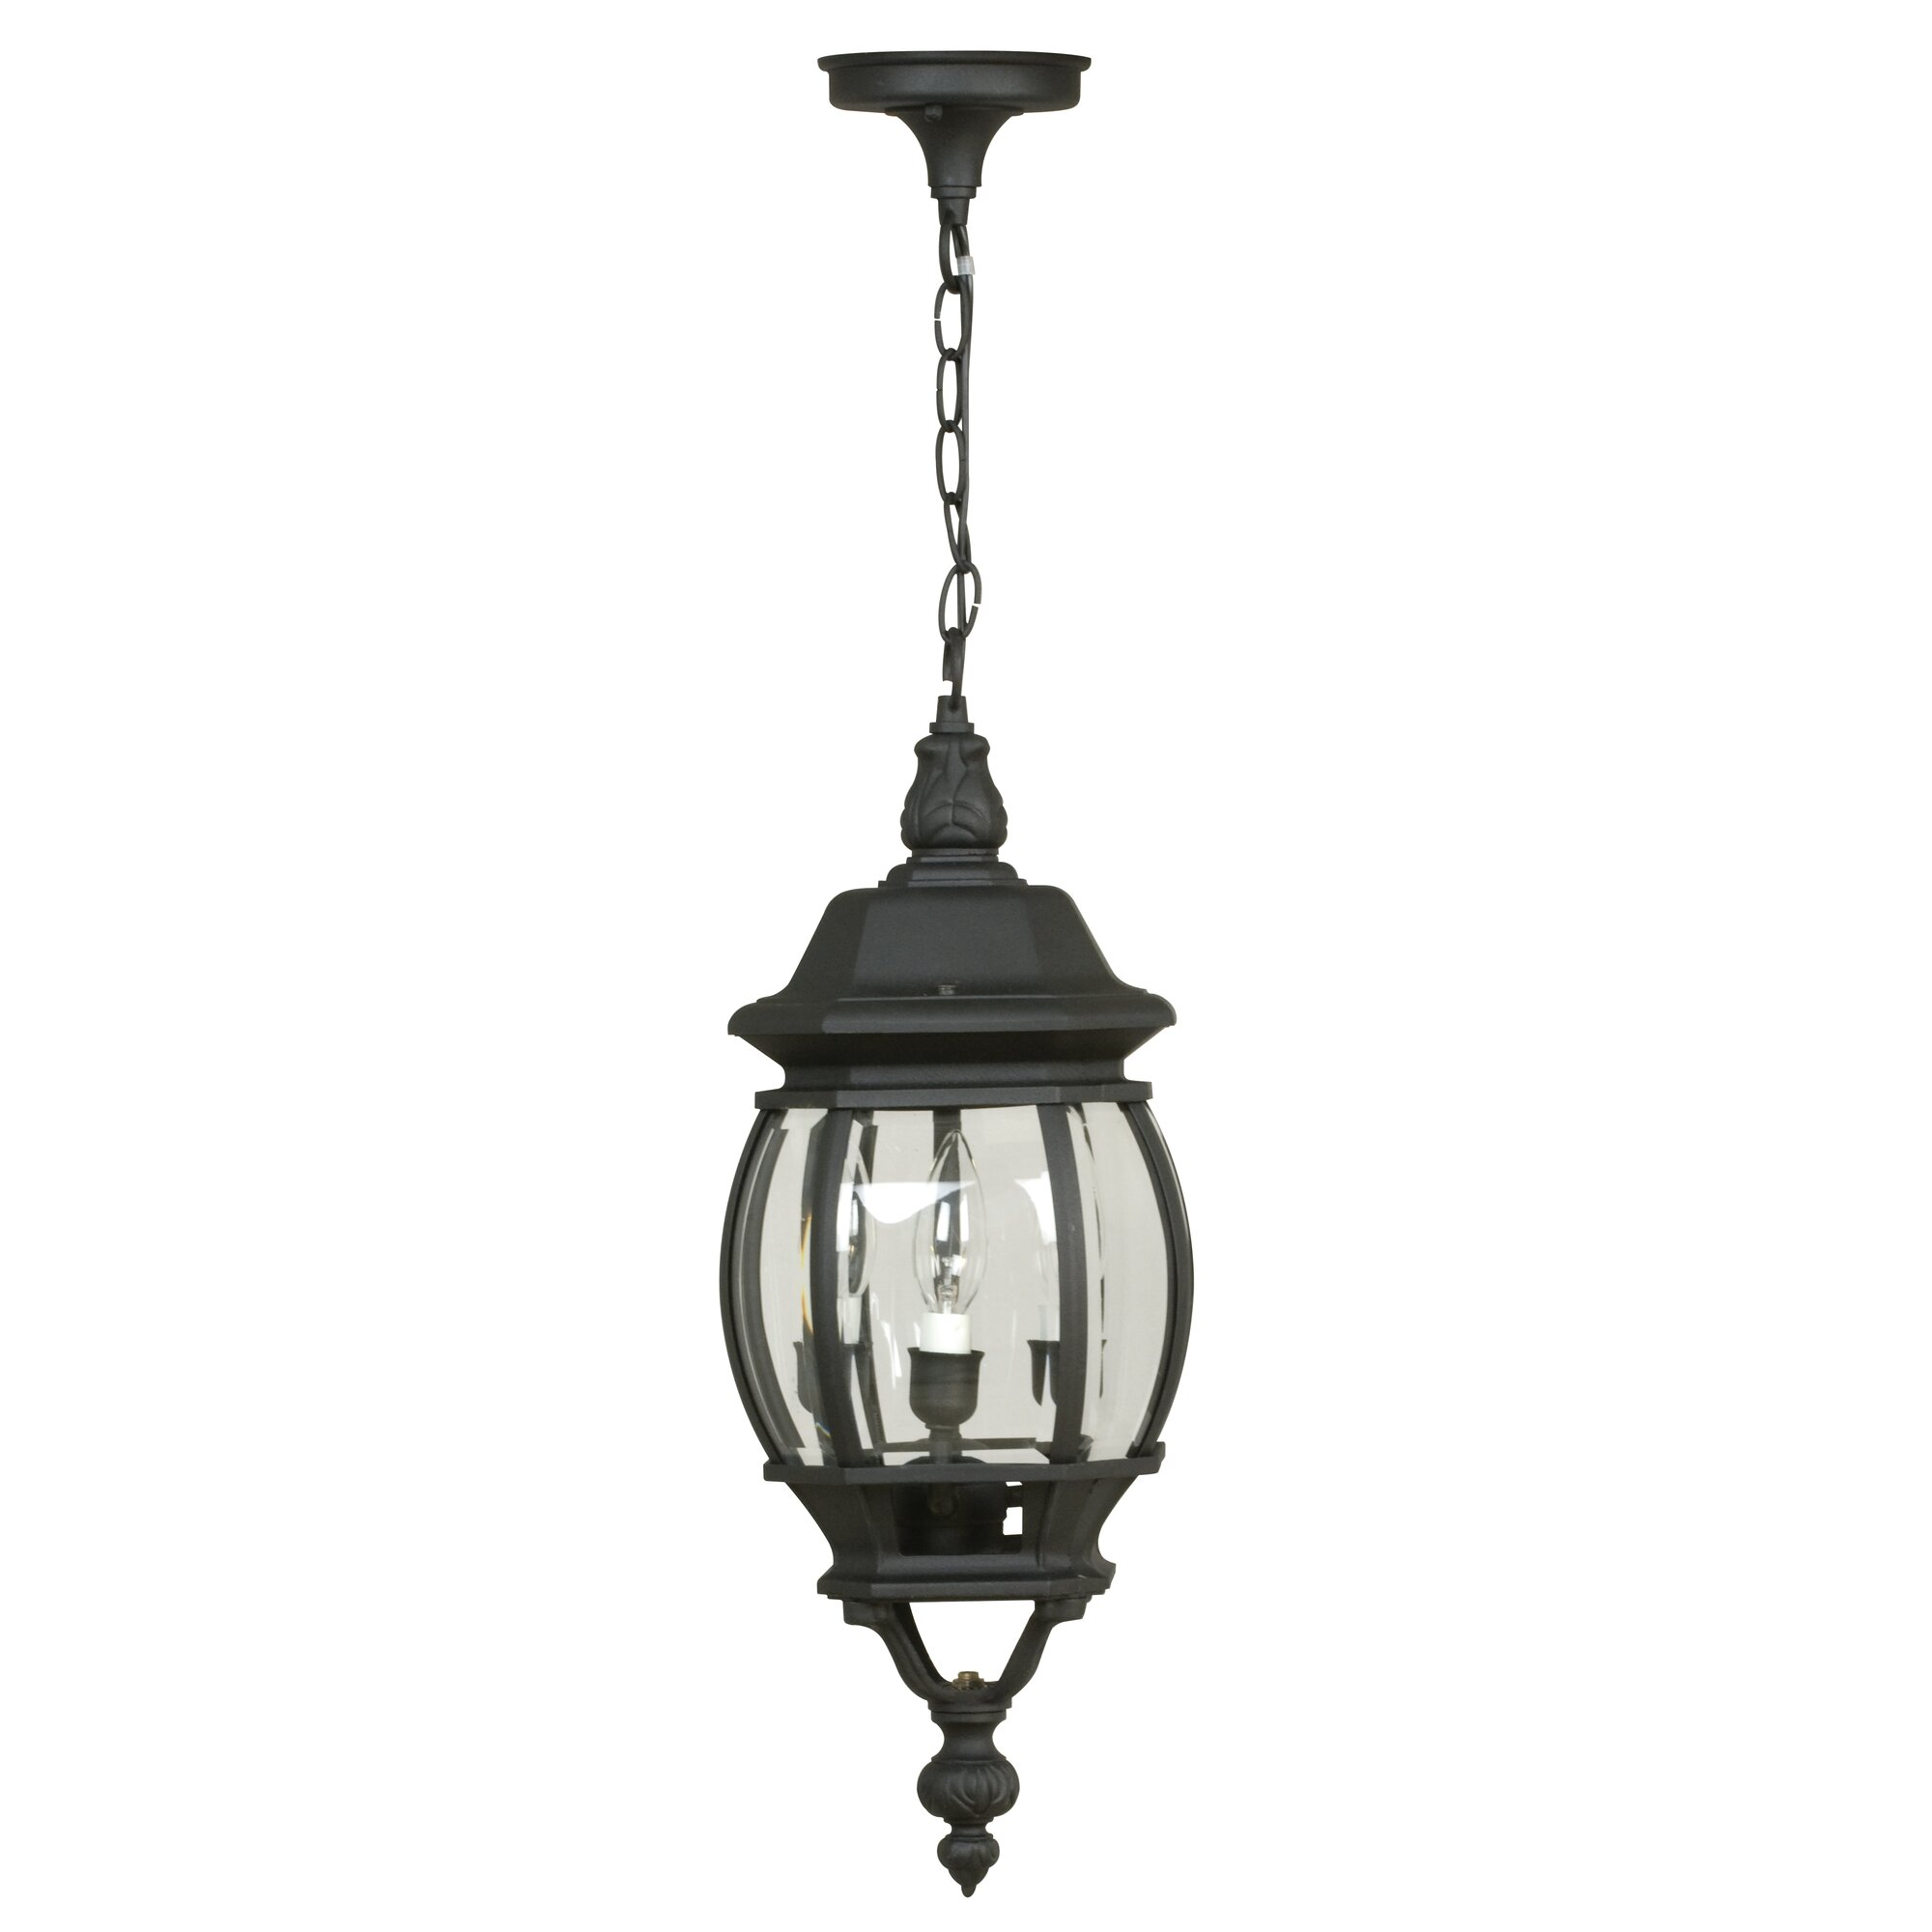 Craftmade french country 3 light outdoor hanging lantern for French country outdoor lighting